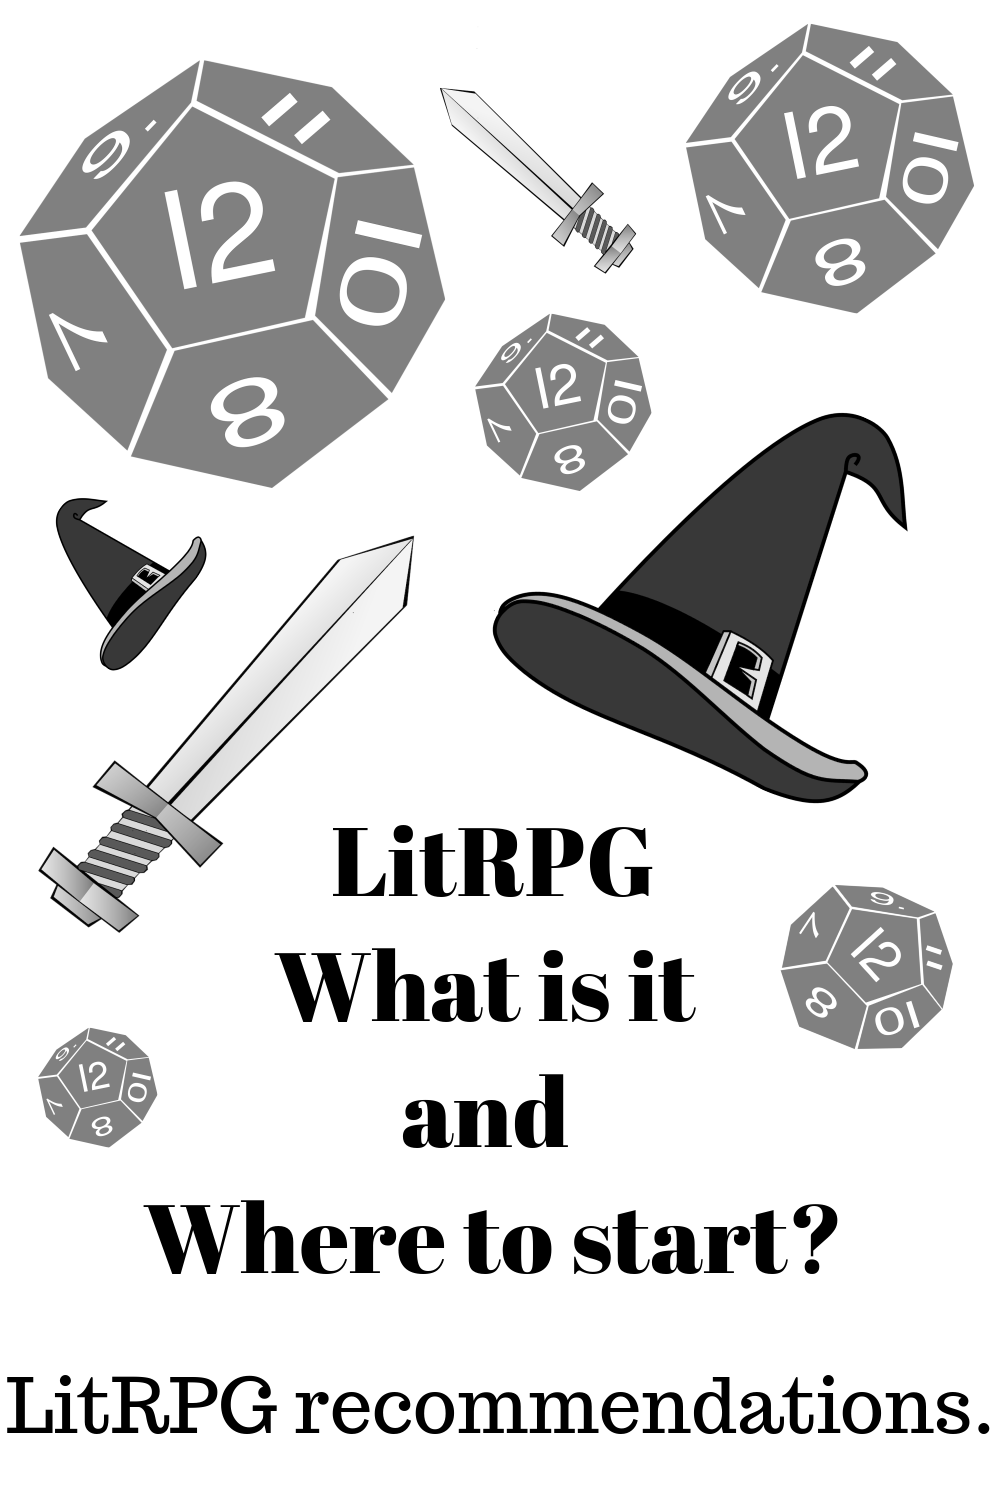 LitRPG, what is it and where to start?